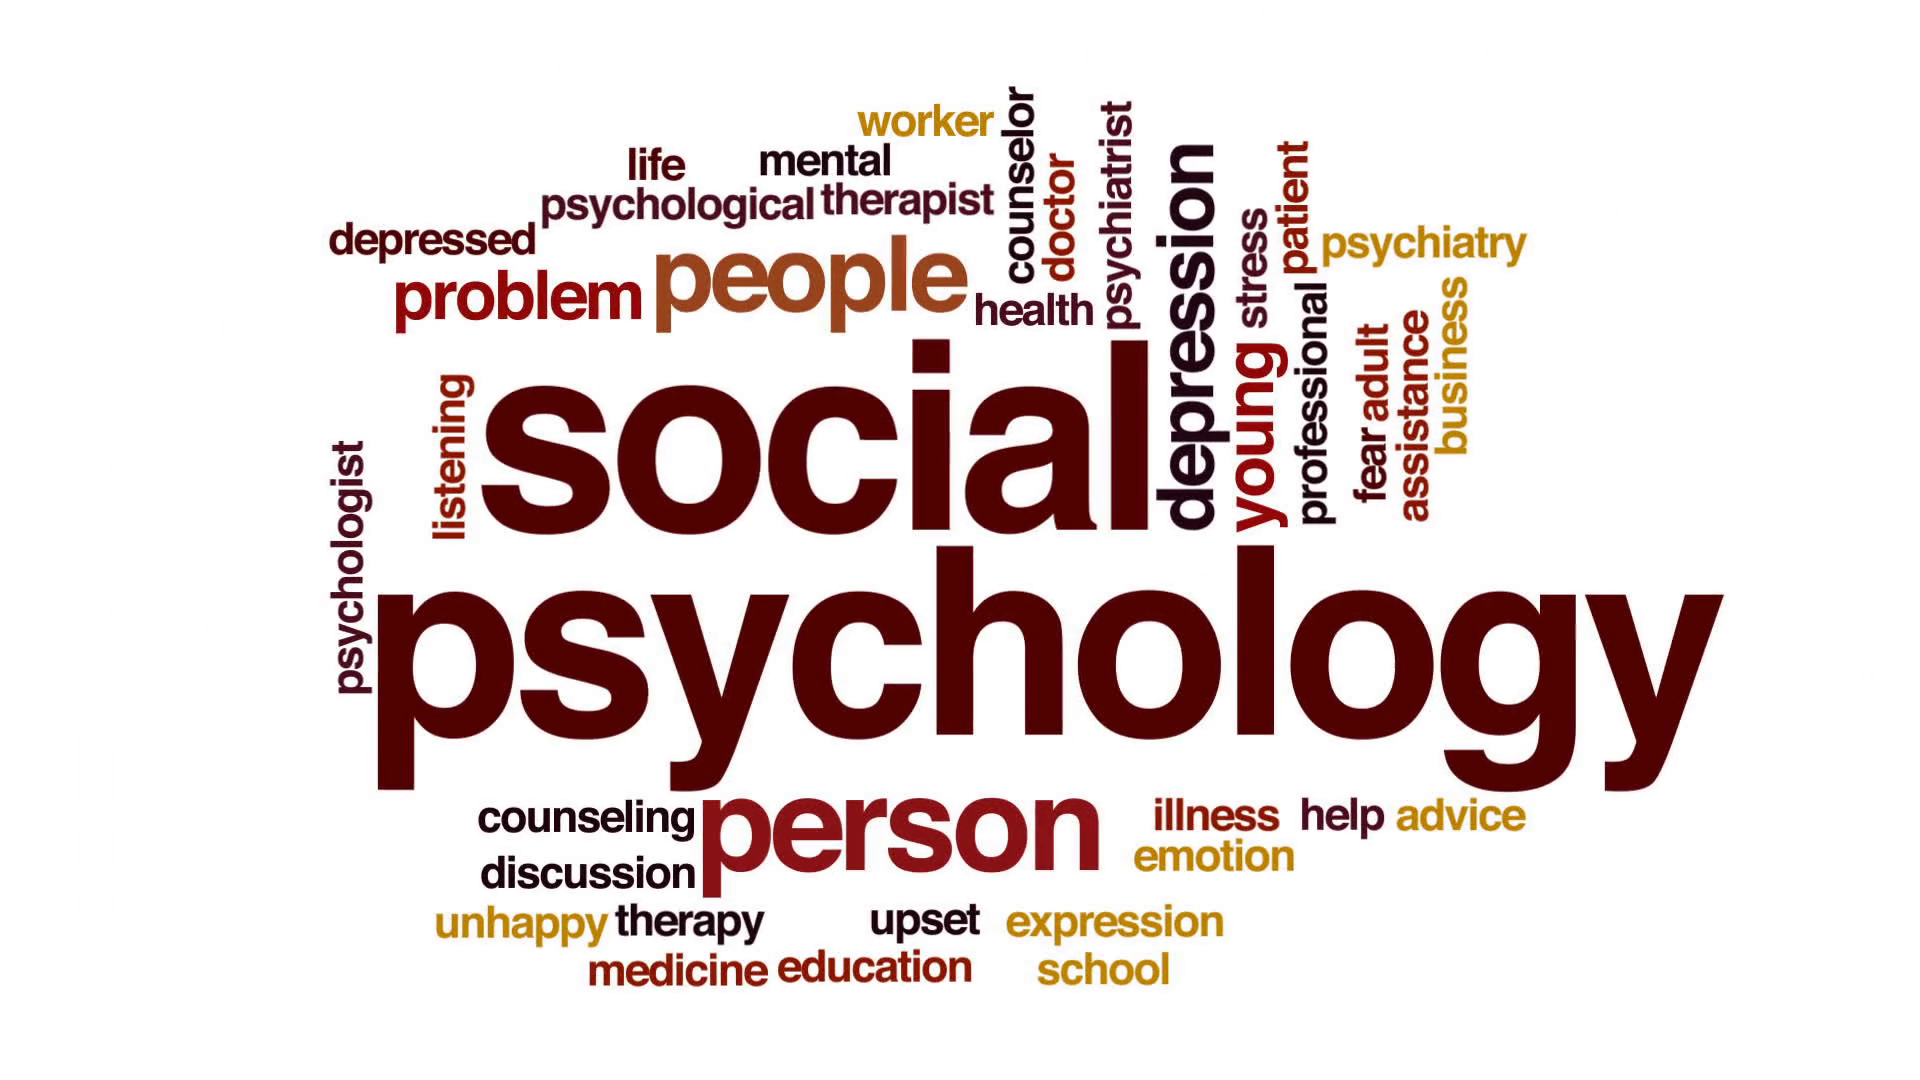 how psychological and sociological insights help The sociological perspective (adapted from i robertson, sociology, ny: worth pub 1981) the basic insight of sociology is that human behavior is shaped by the groups to which people belong and by the social interaction that takes place within those groups.